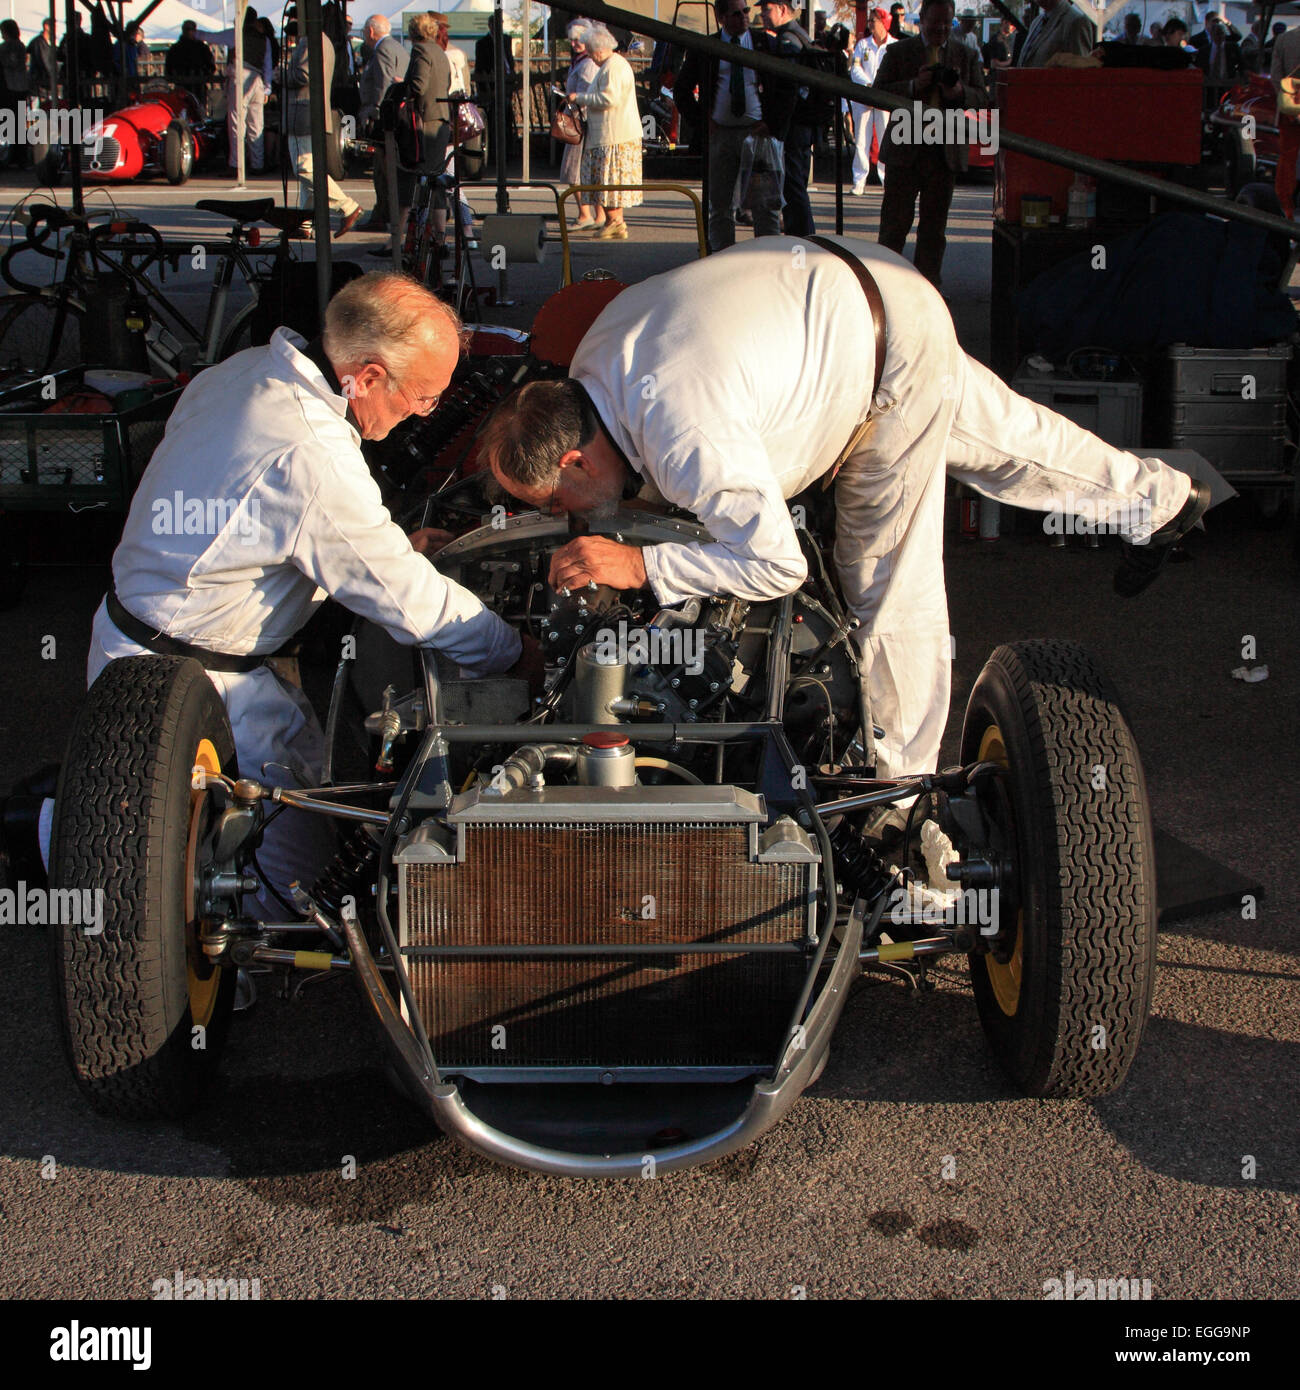 1959 Lotus-Climax 16 mit Last-Minute-Anpassungen im Fahrerlager / Goodwood Revival / Goodwood / UK Stockbild